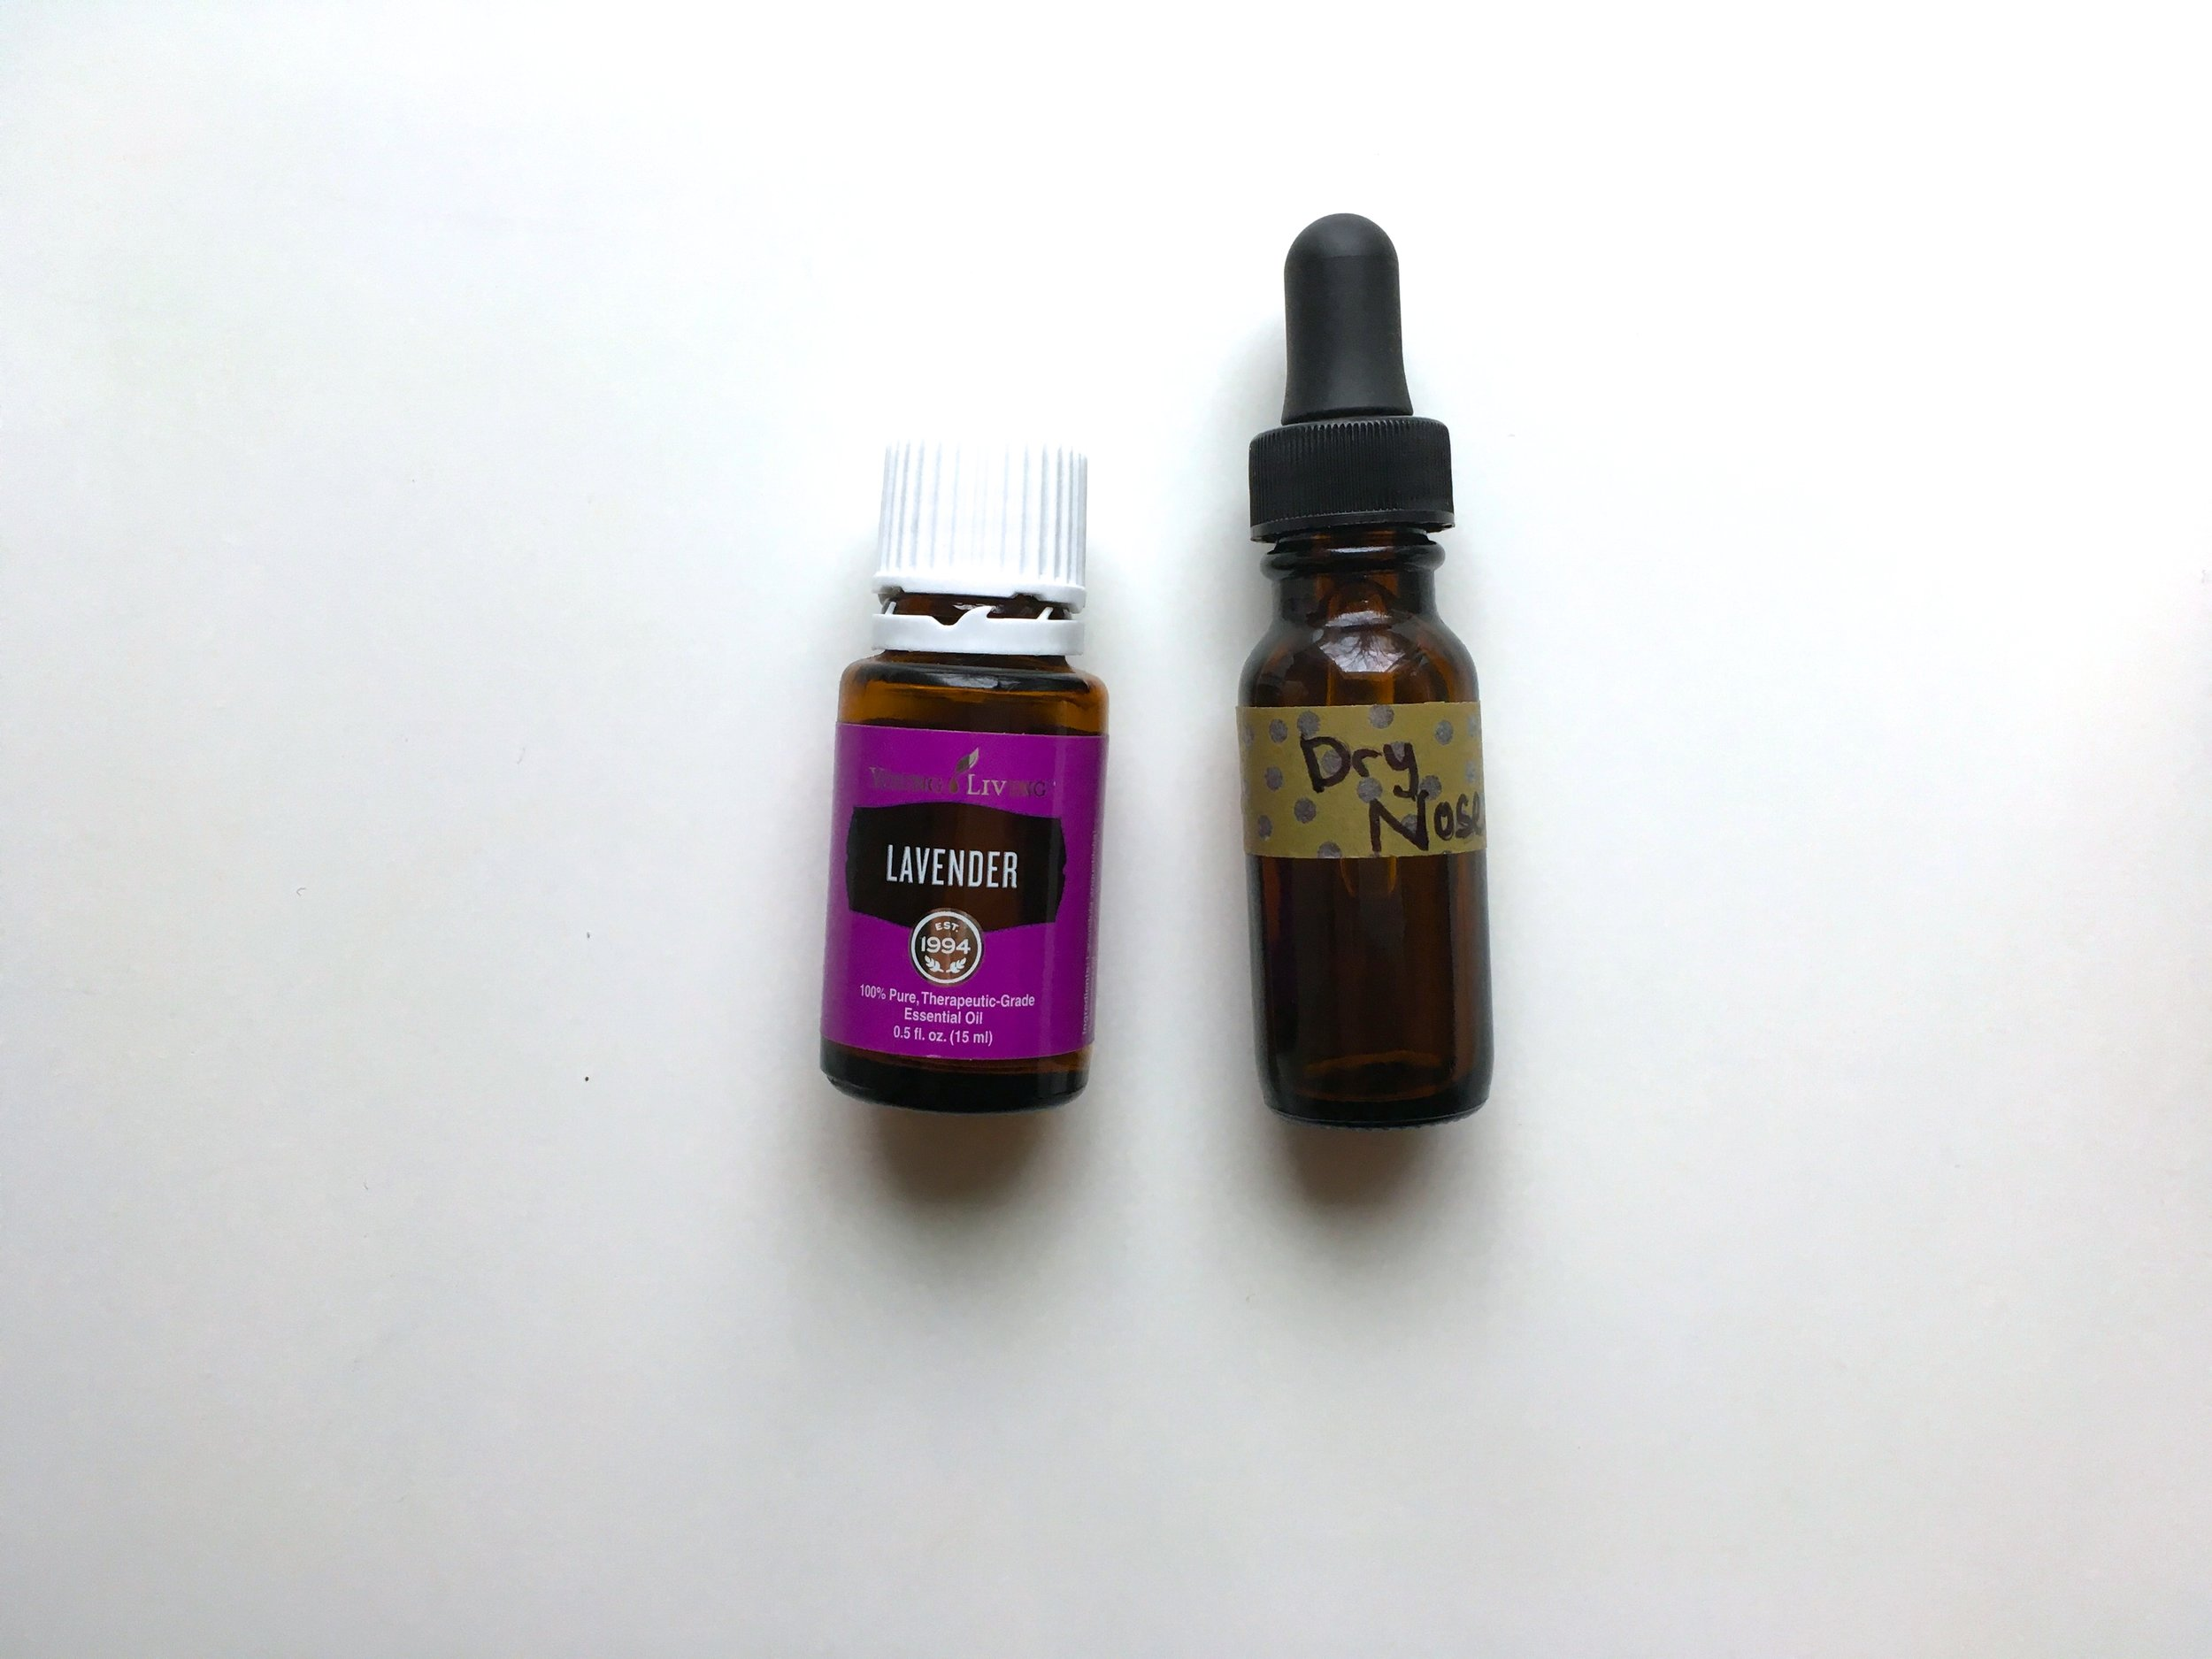 Lavender is incredibly soothing and has cleansing properties to boot, making it a wonderful oil for this serum.